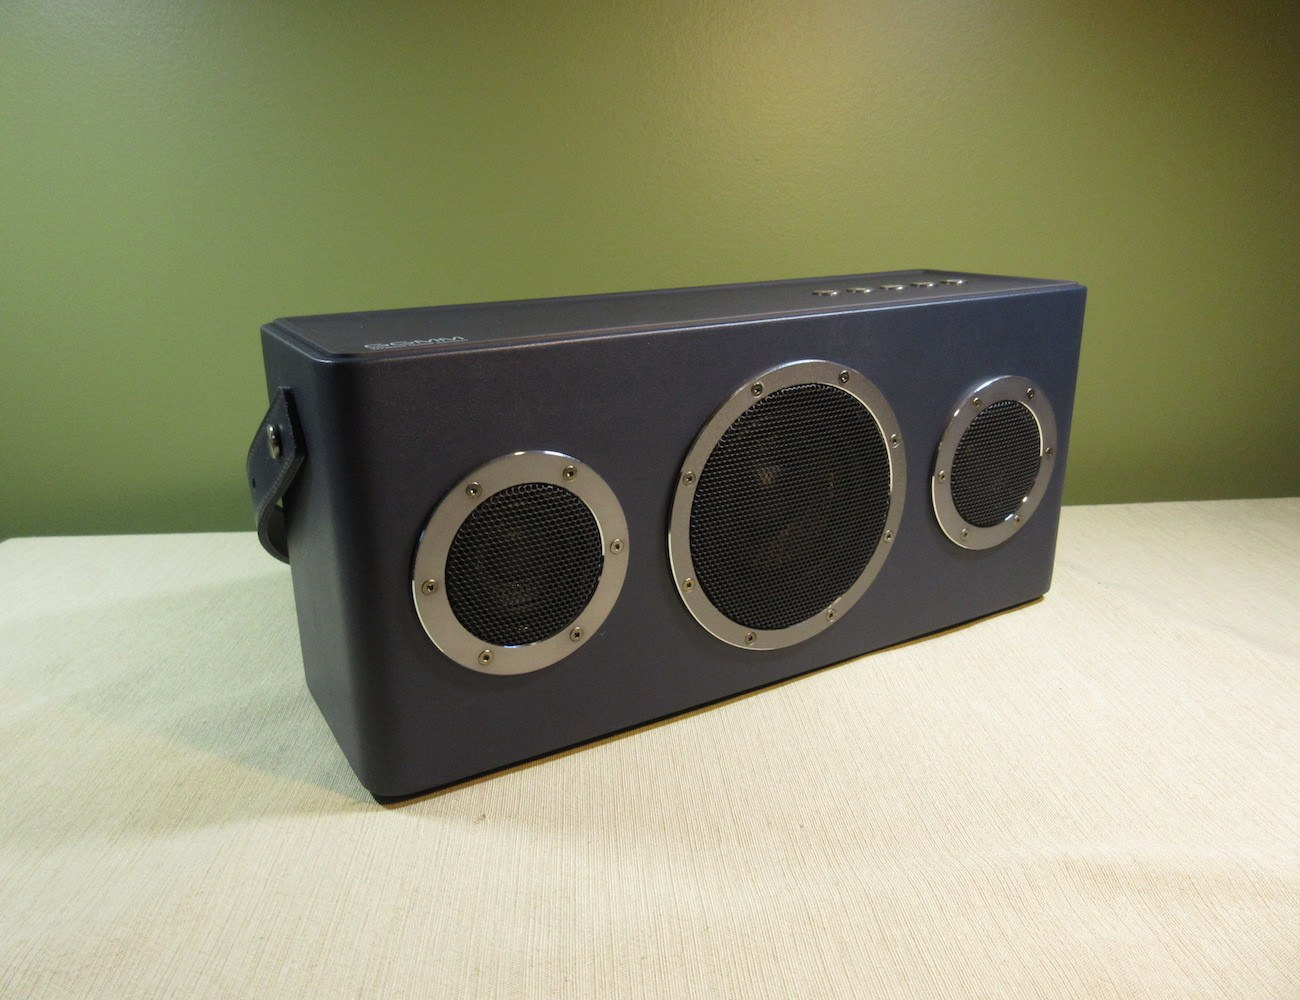 GGMM M4 WiFi Wireless Bluetooth Speakers